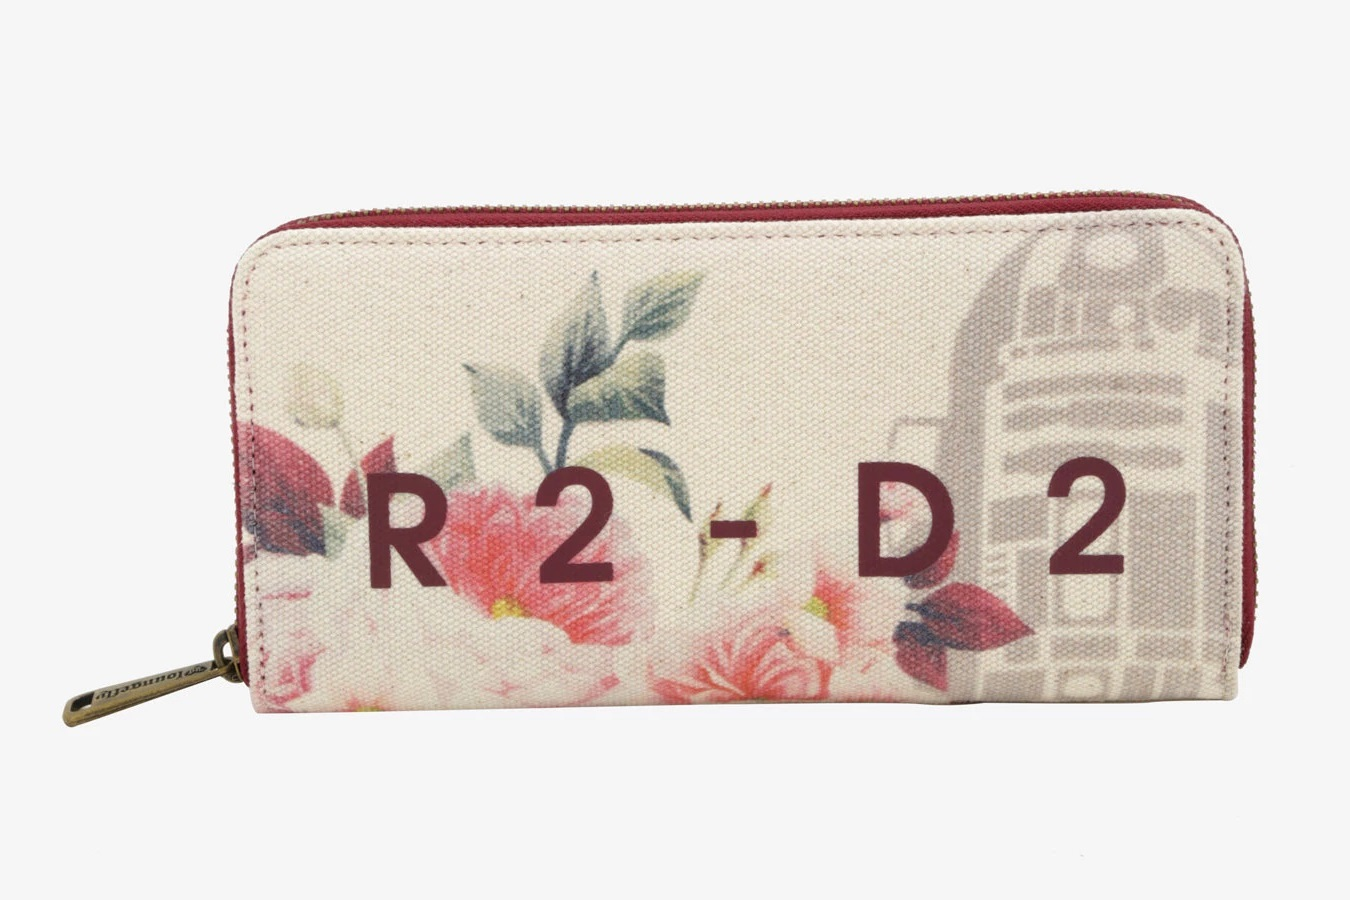 Loungefly R2-D2 Floral Wallet at Box Lunch